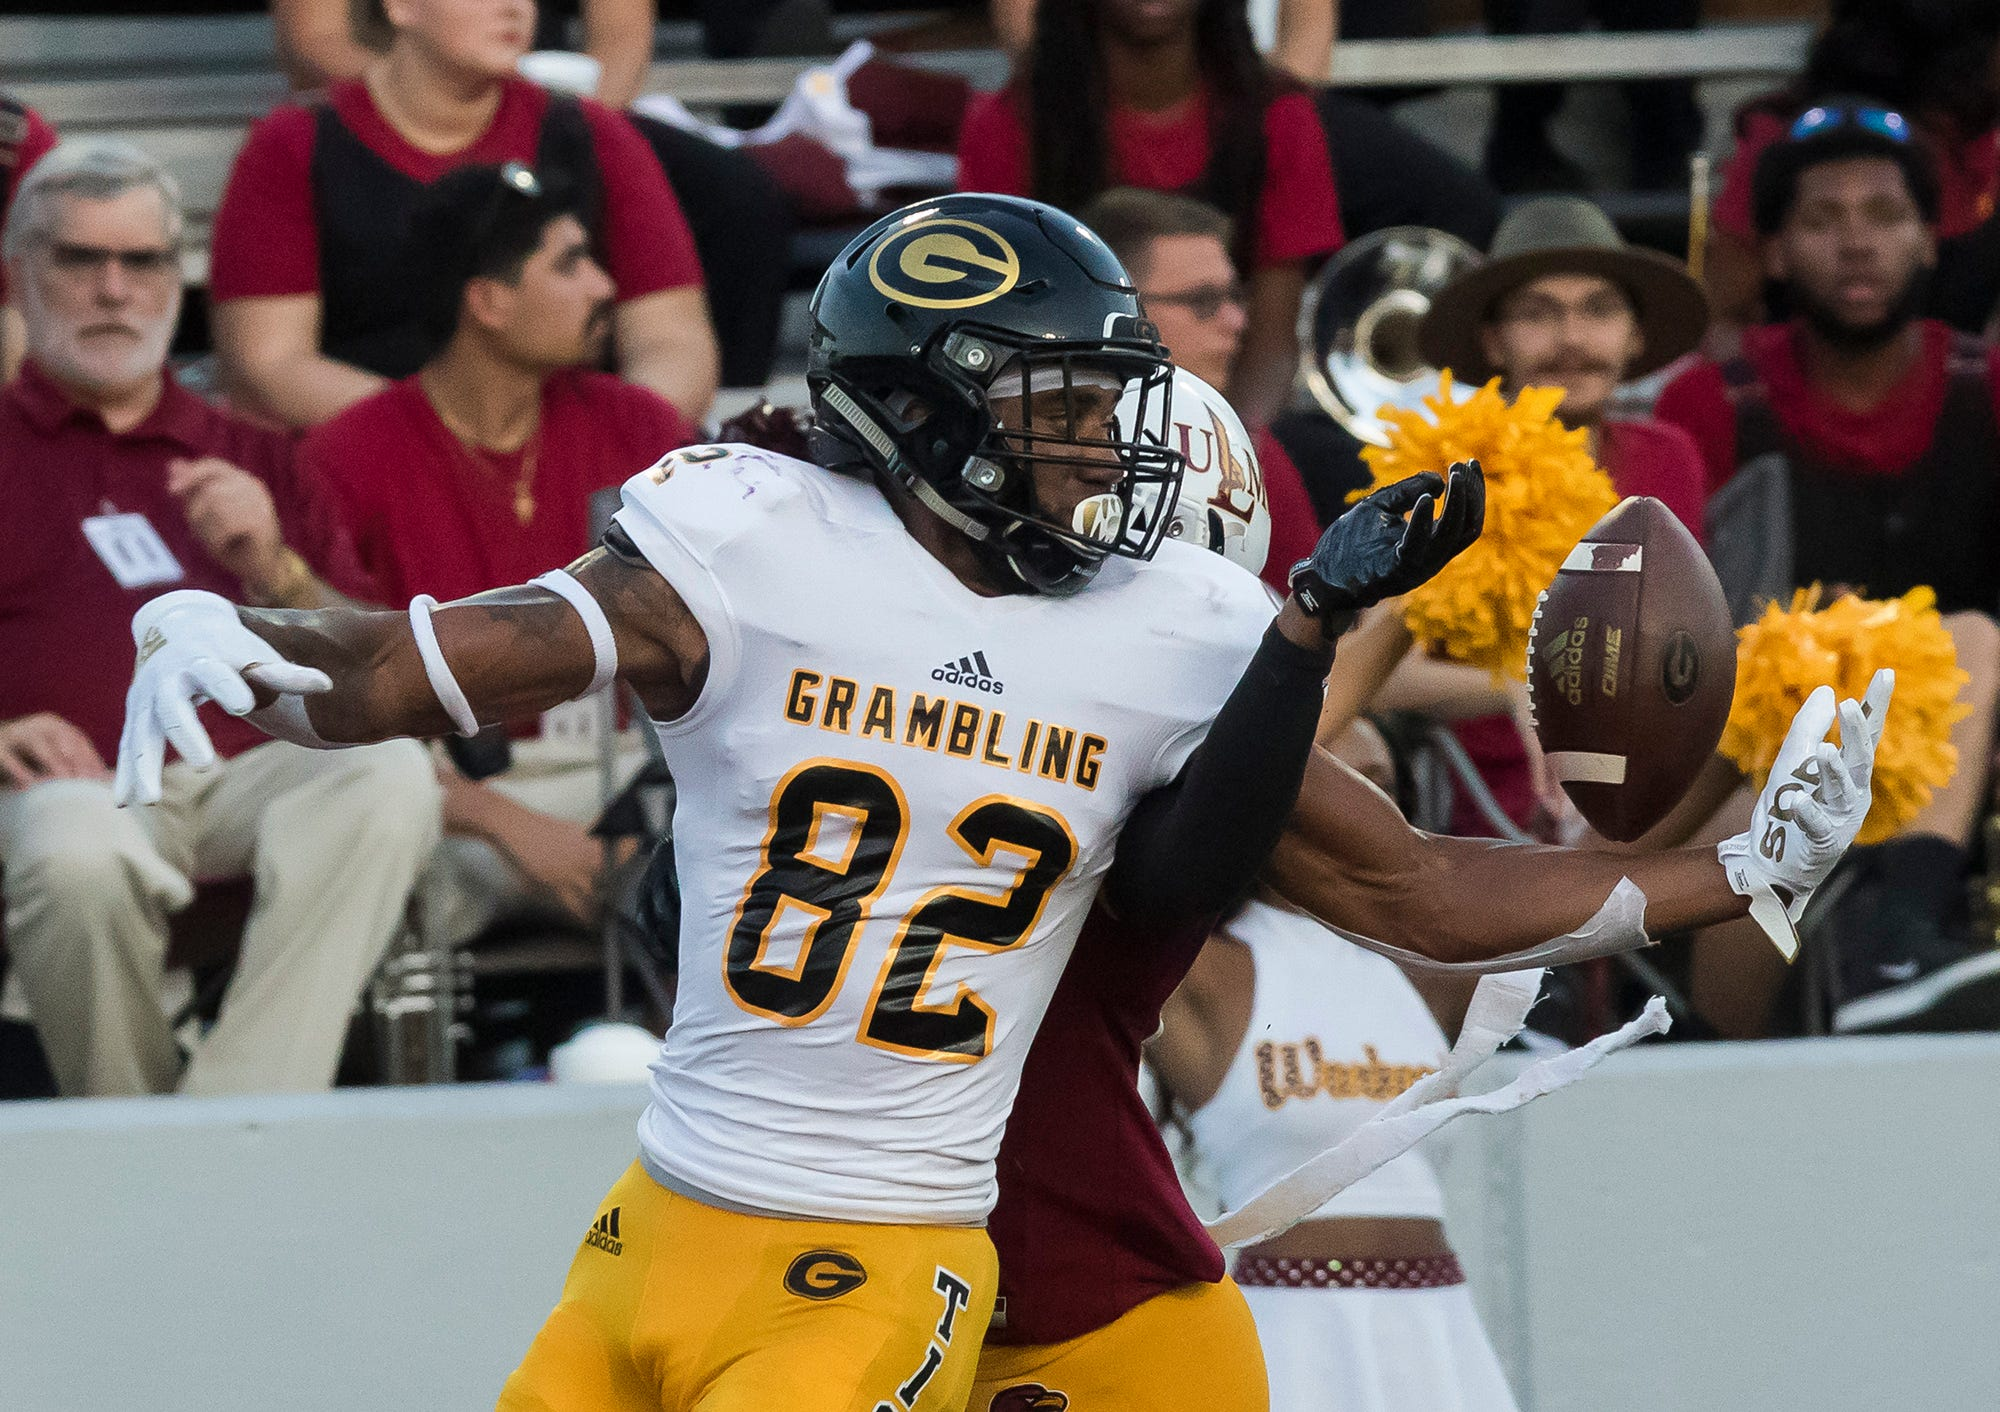 Grambling State Vs La Tech Football Offenses Face Same Issues